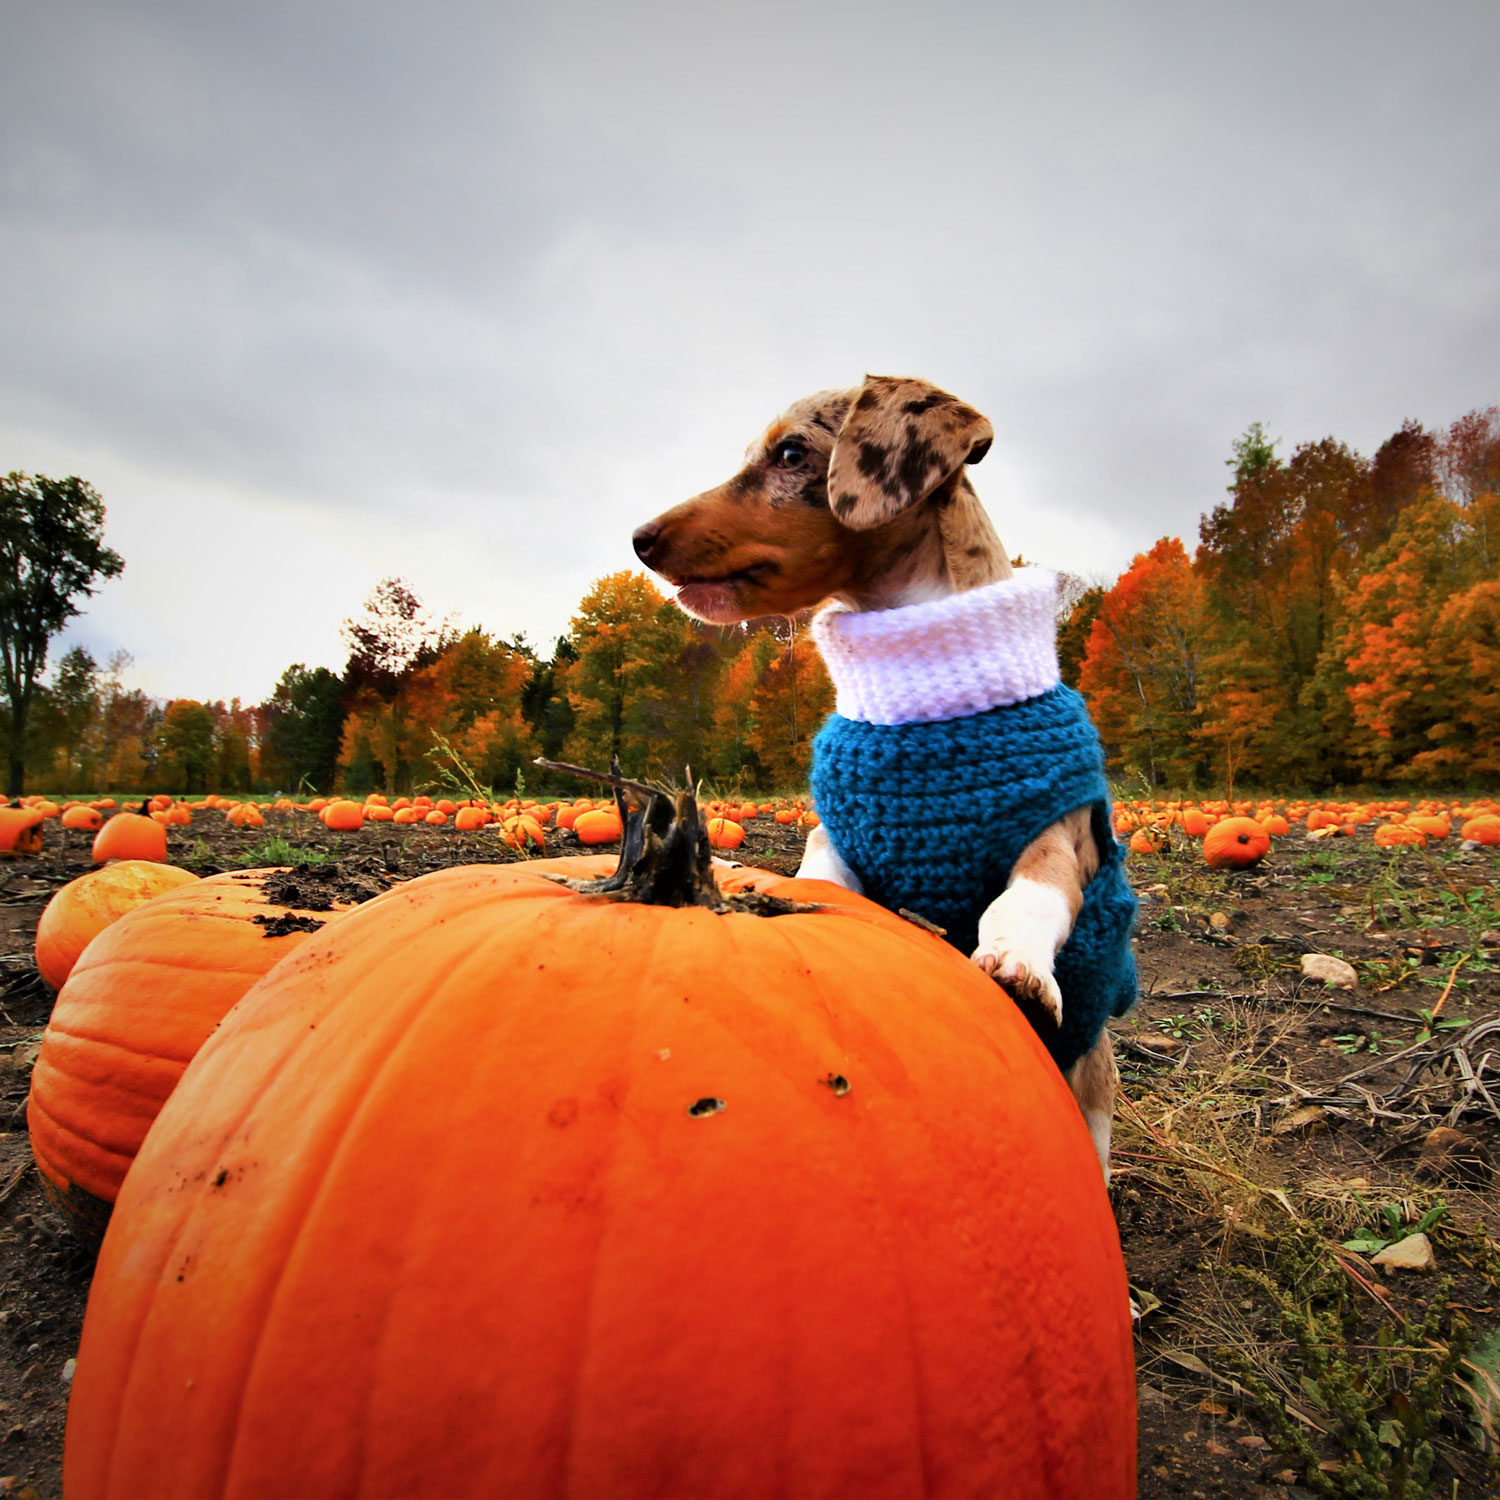 The #1 Fall Food to Feed Your Dog, According to Veterinarians